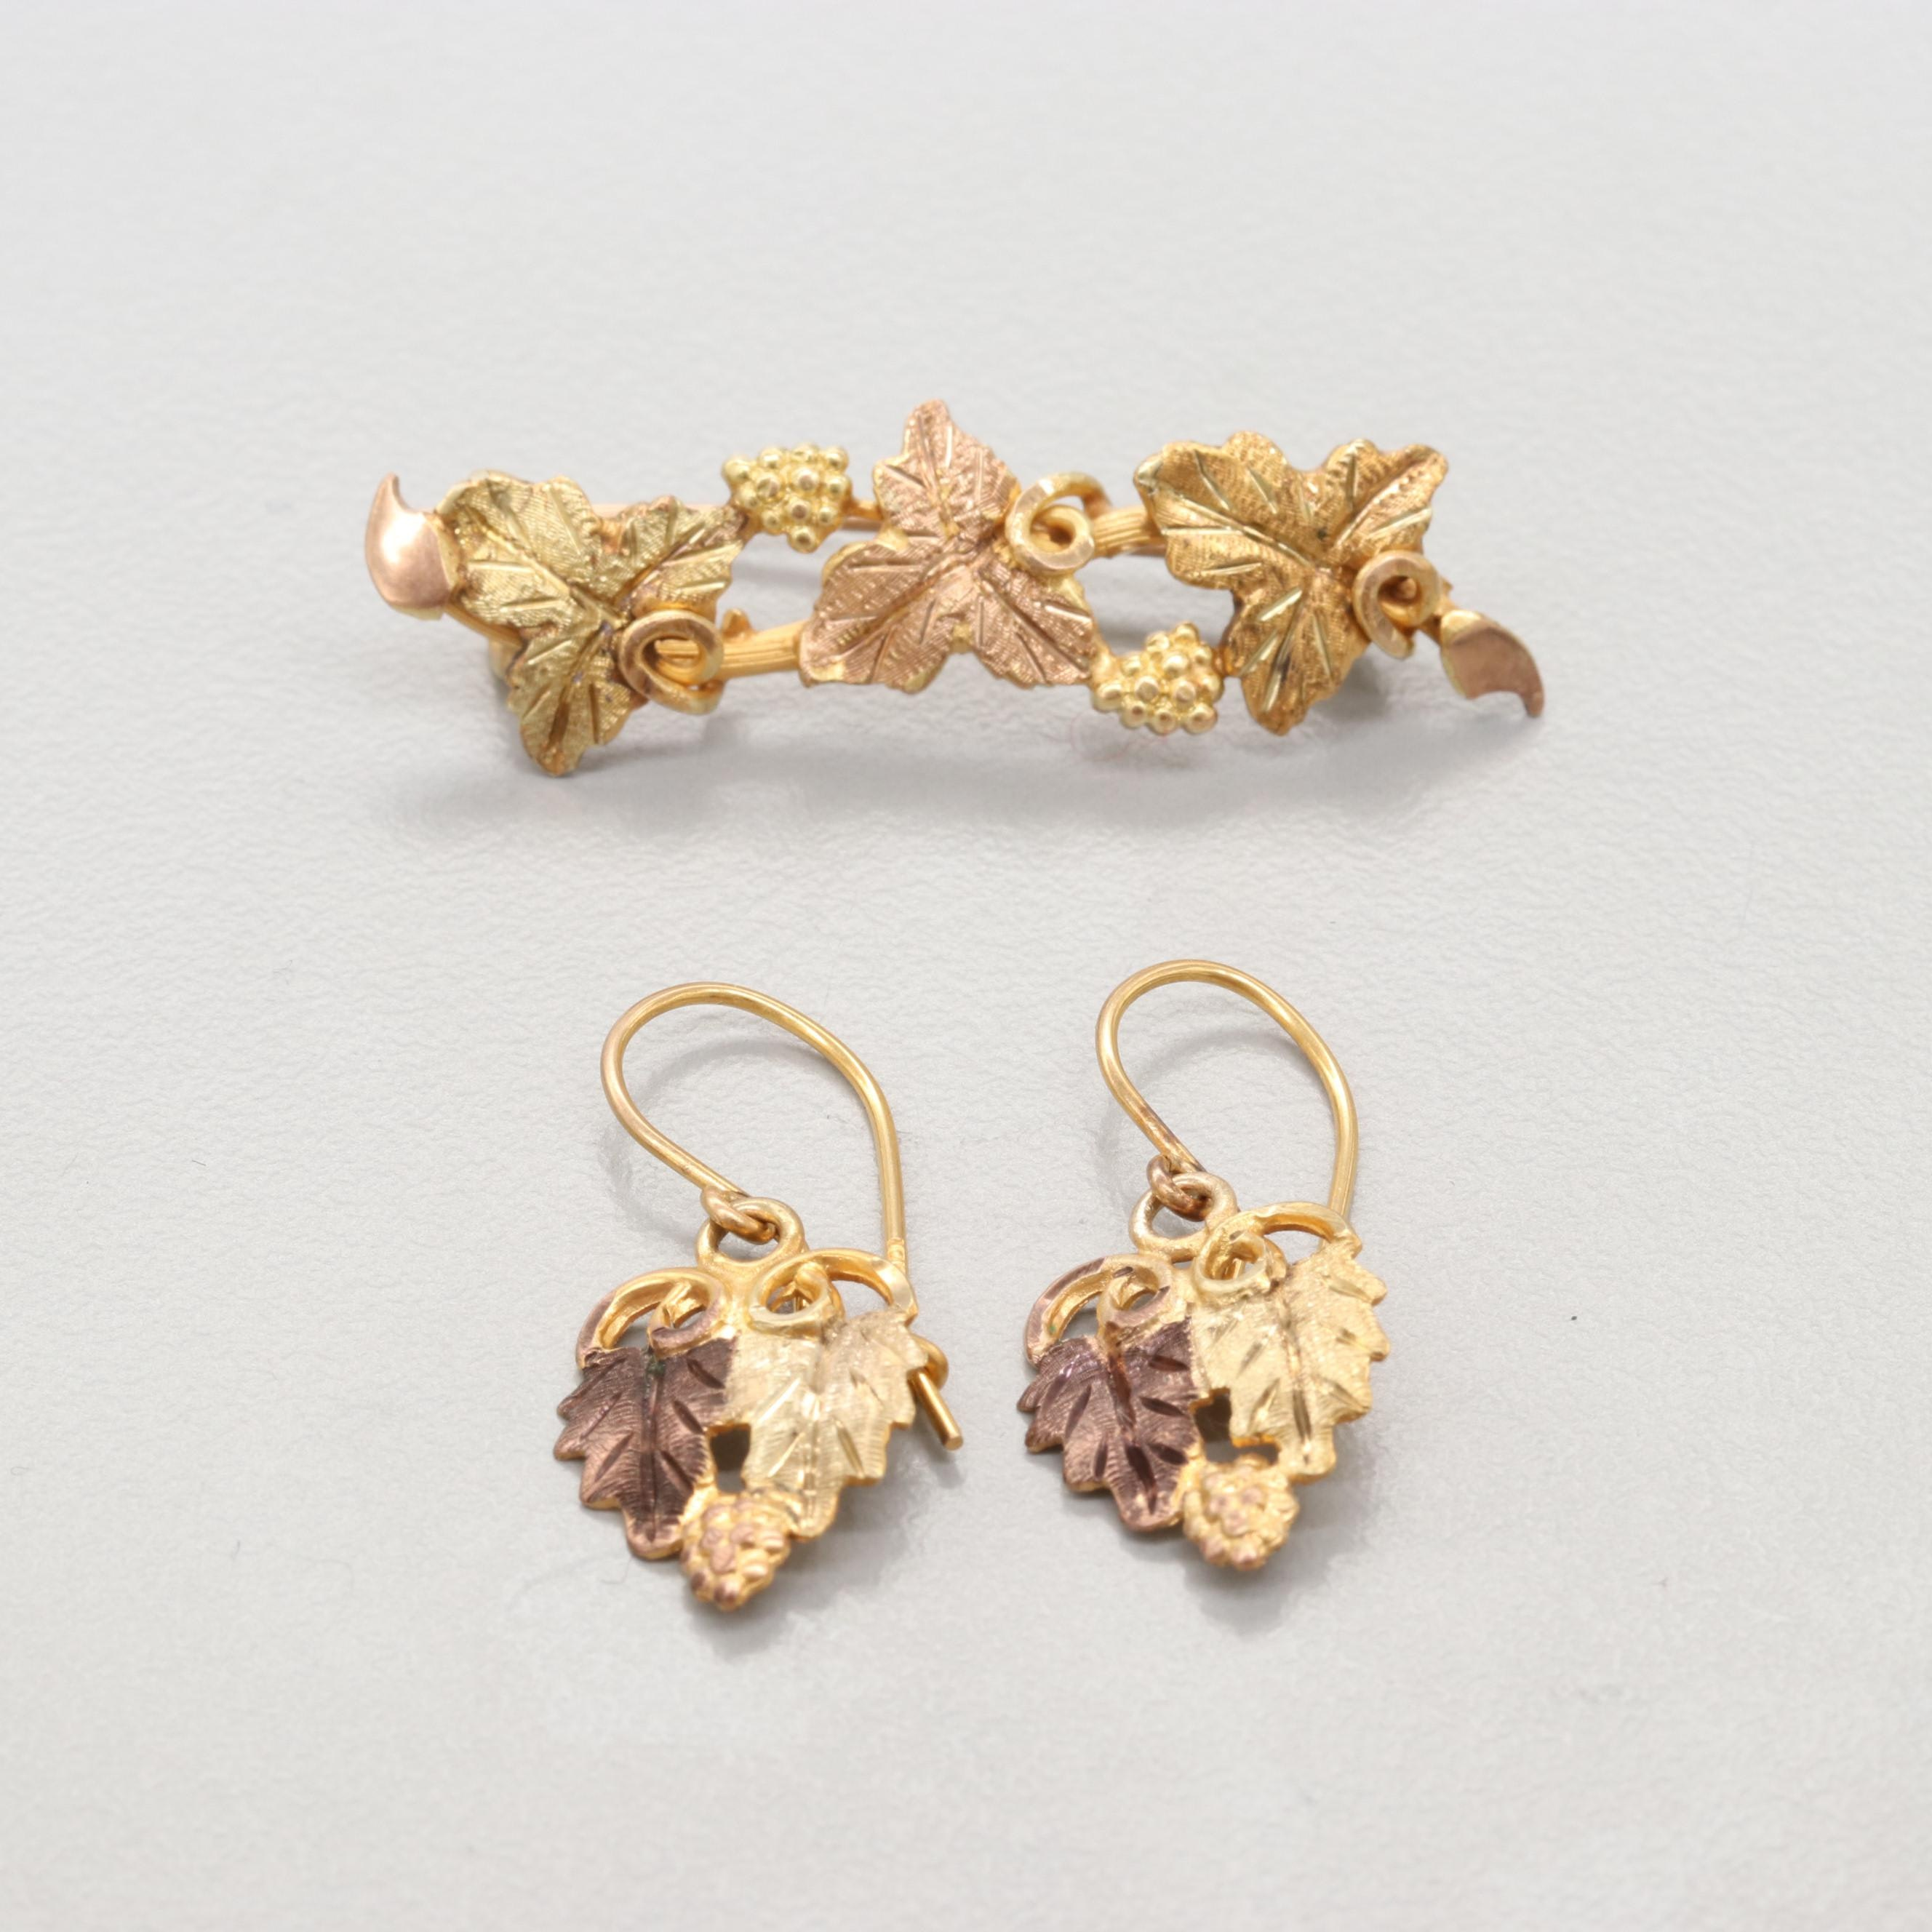 14K Rose Gold and Yellow Gold Brooch and 10K Two Tone Gold Earrings